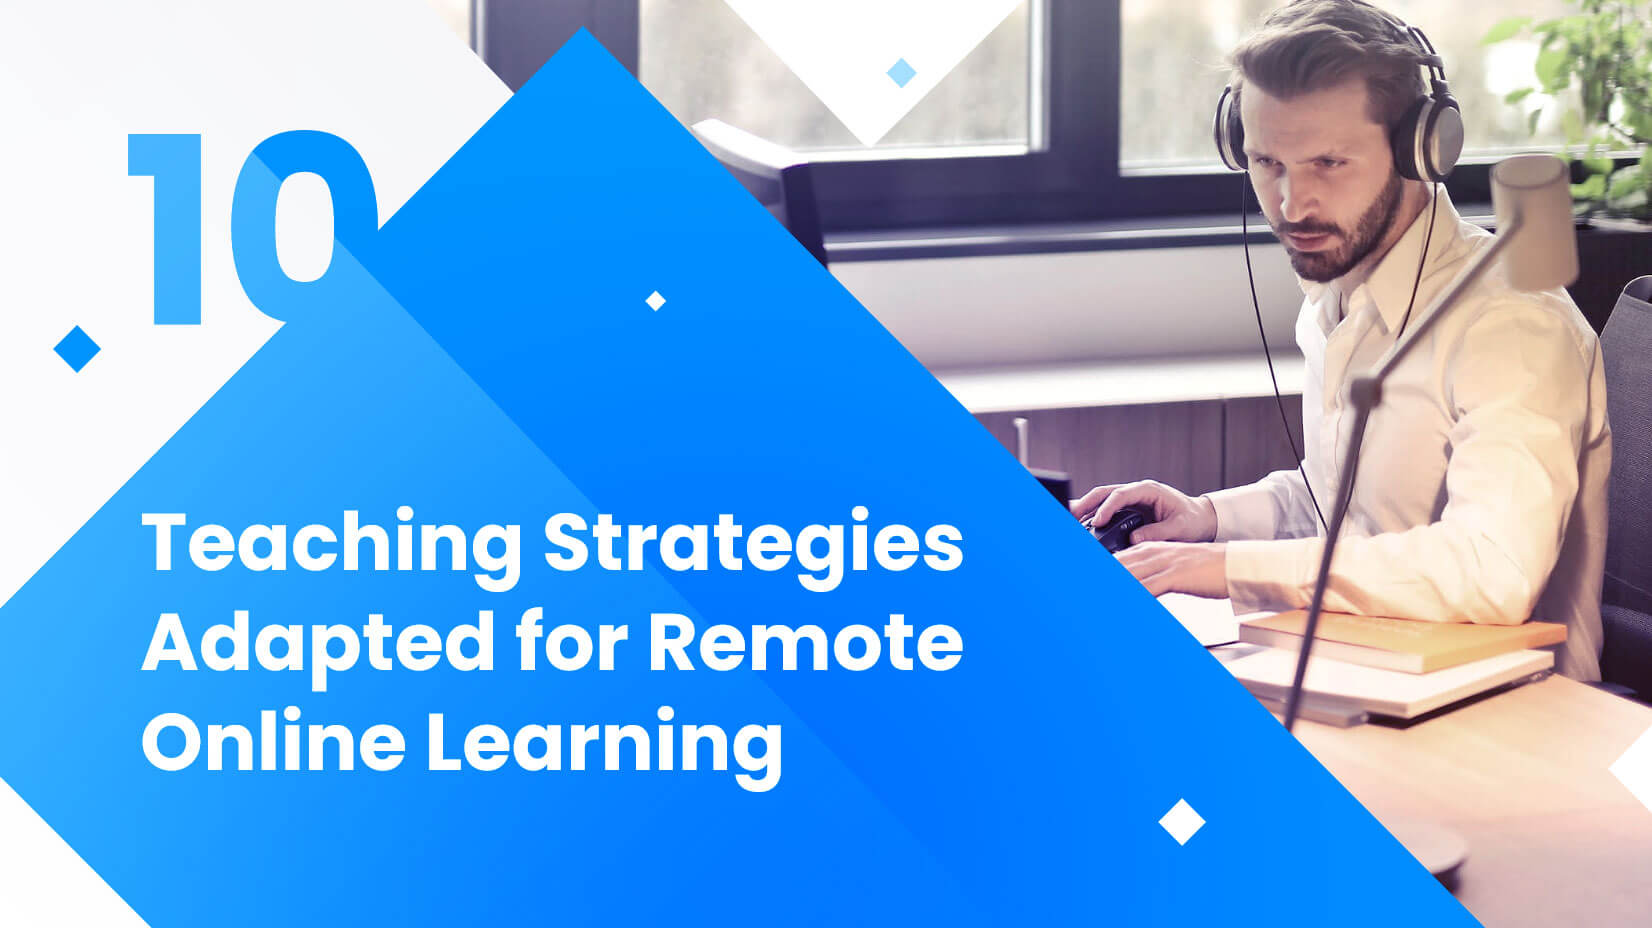 Teaching strategies adapted for remote online learning